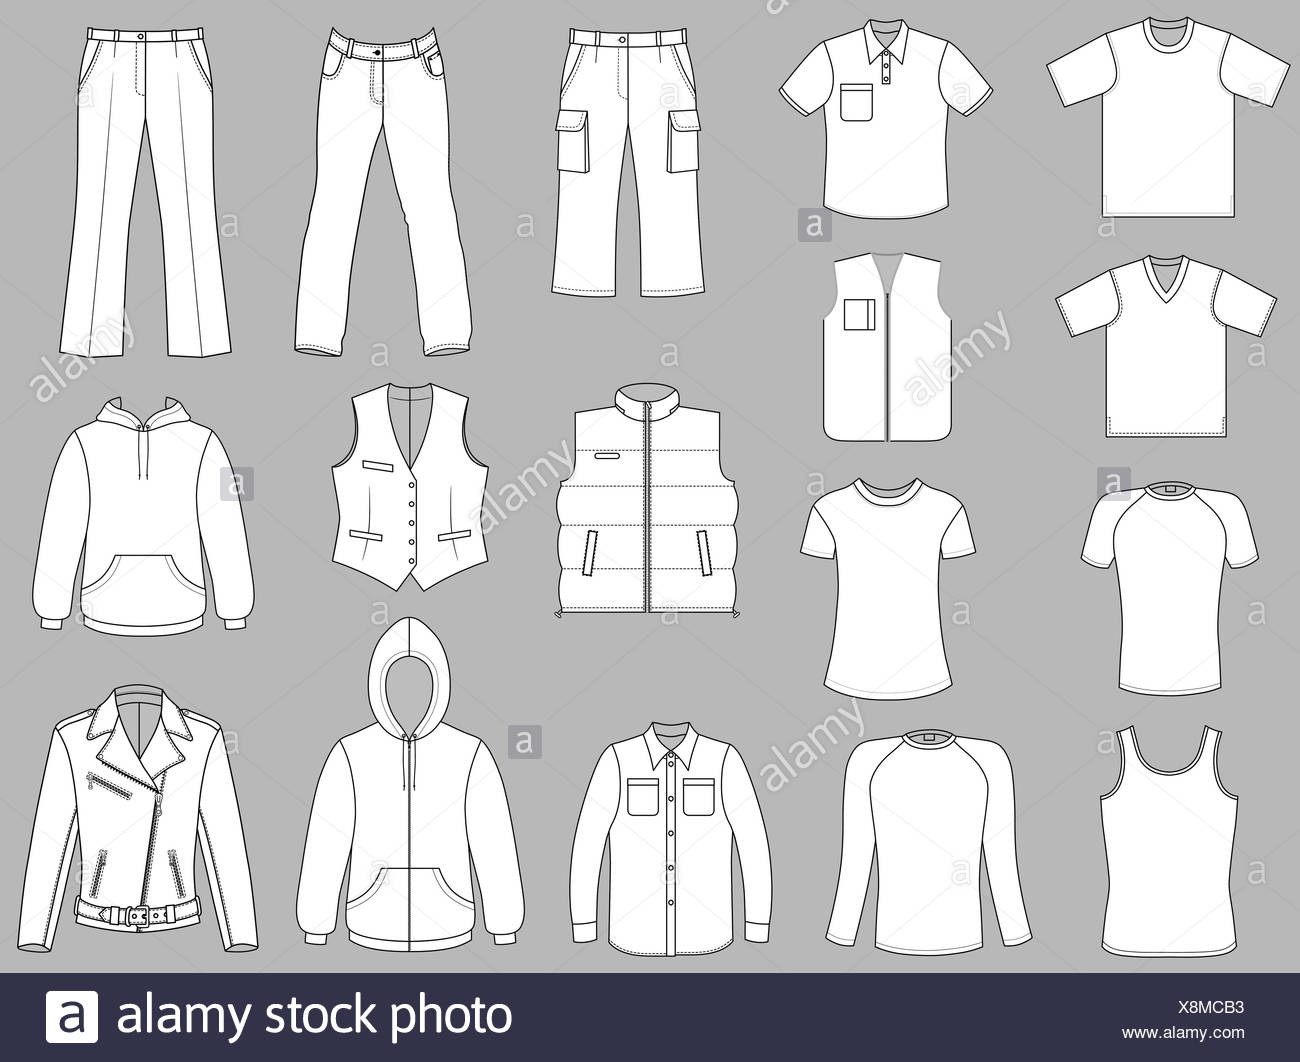 Man clothes greyscale collection isolated on grey - Stock Image